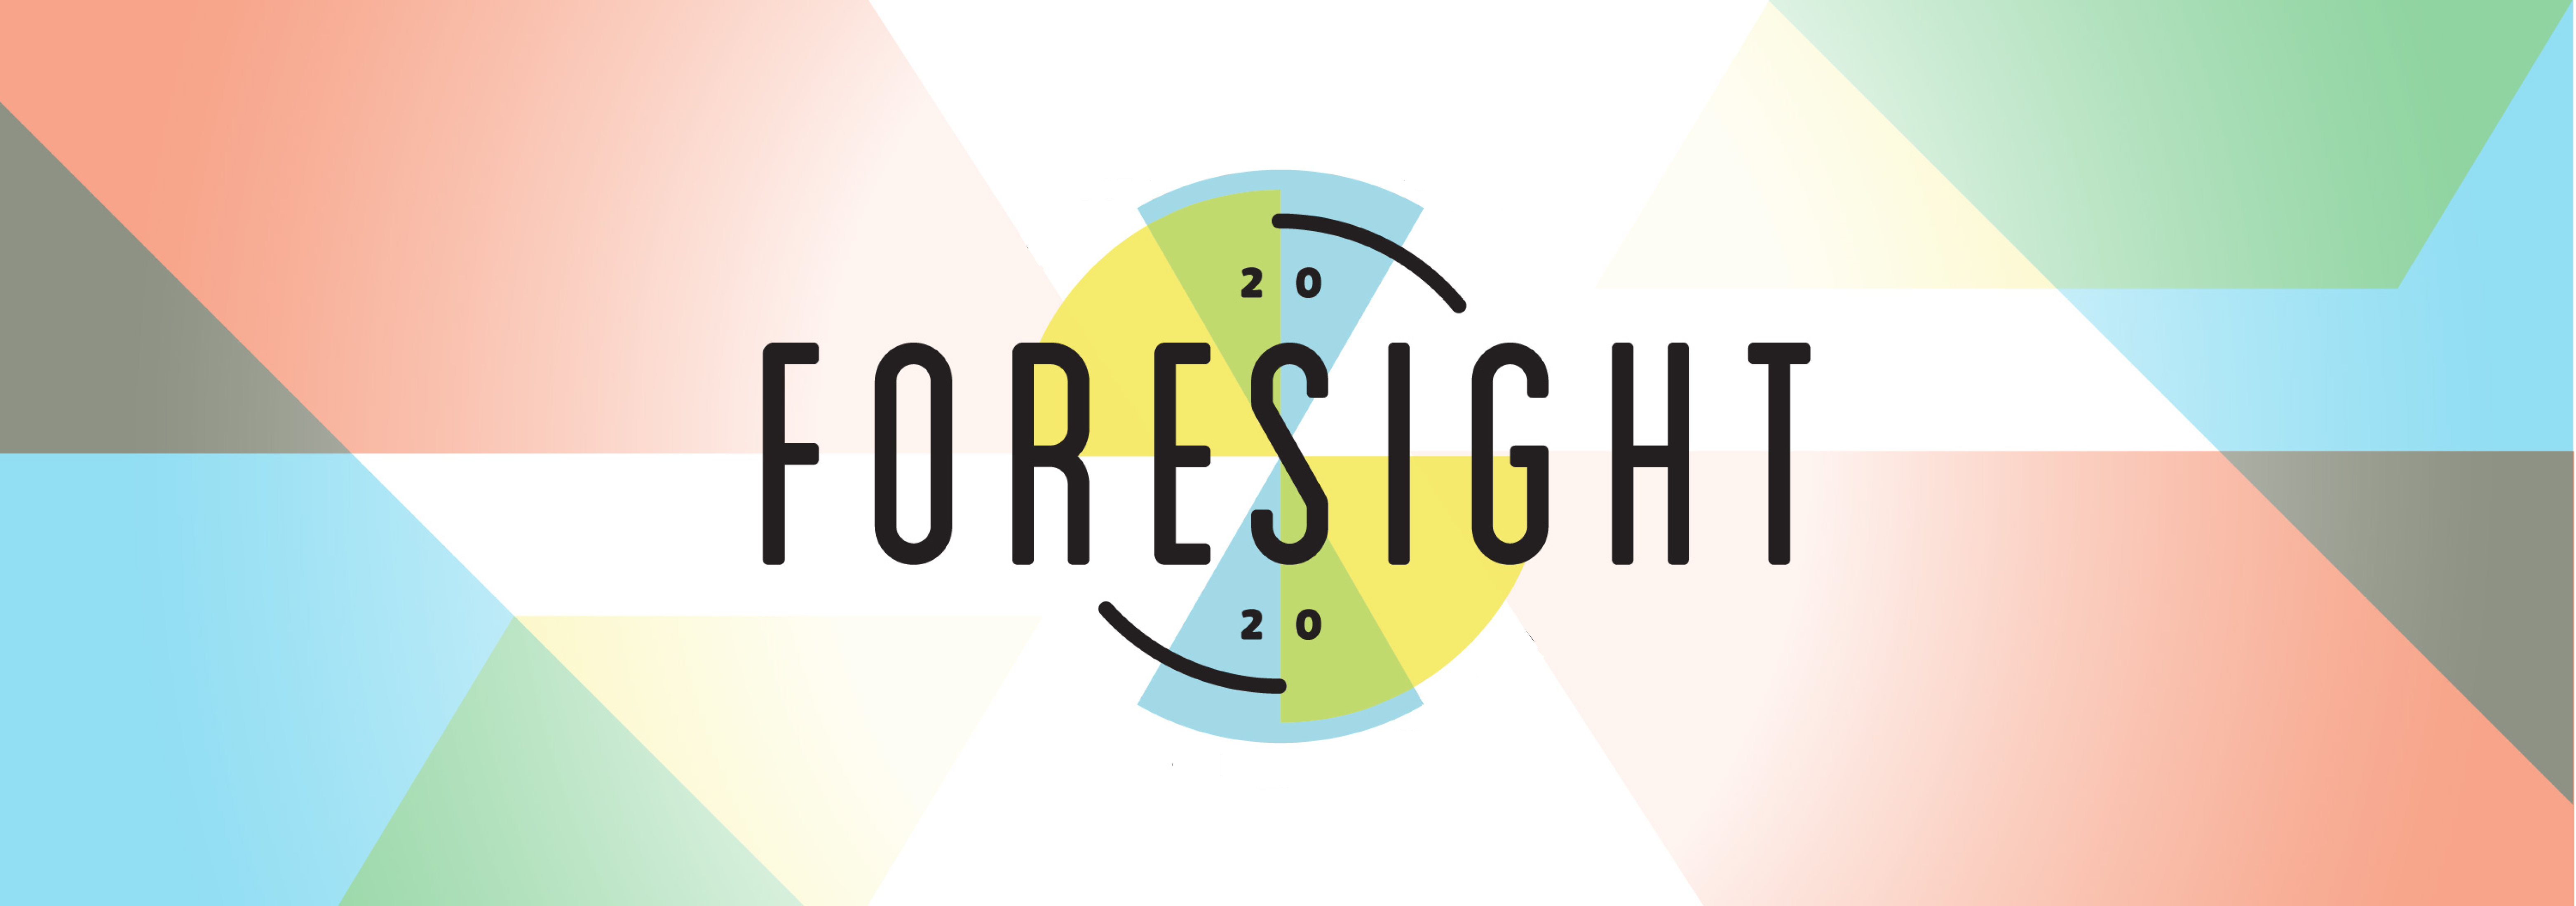 Foresight 2020: ArchEx, Design Forum & Visions